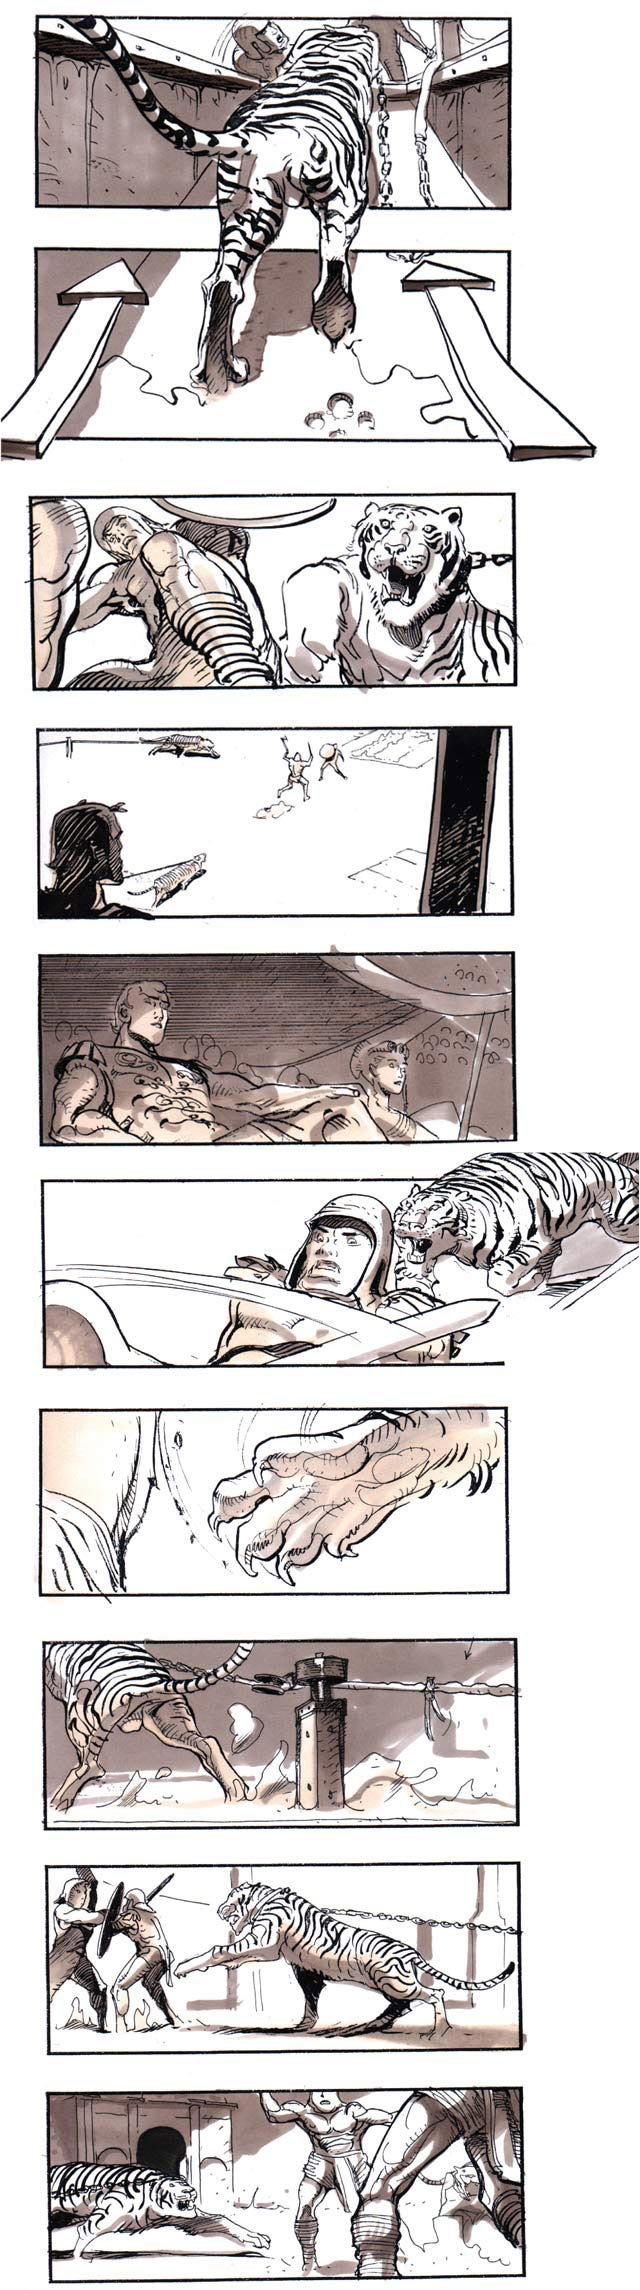 Gladiator Storyboard By Sylvain Despretz